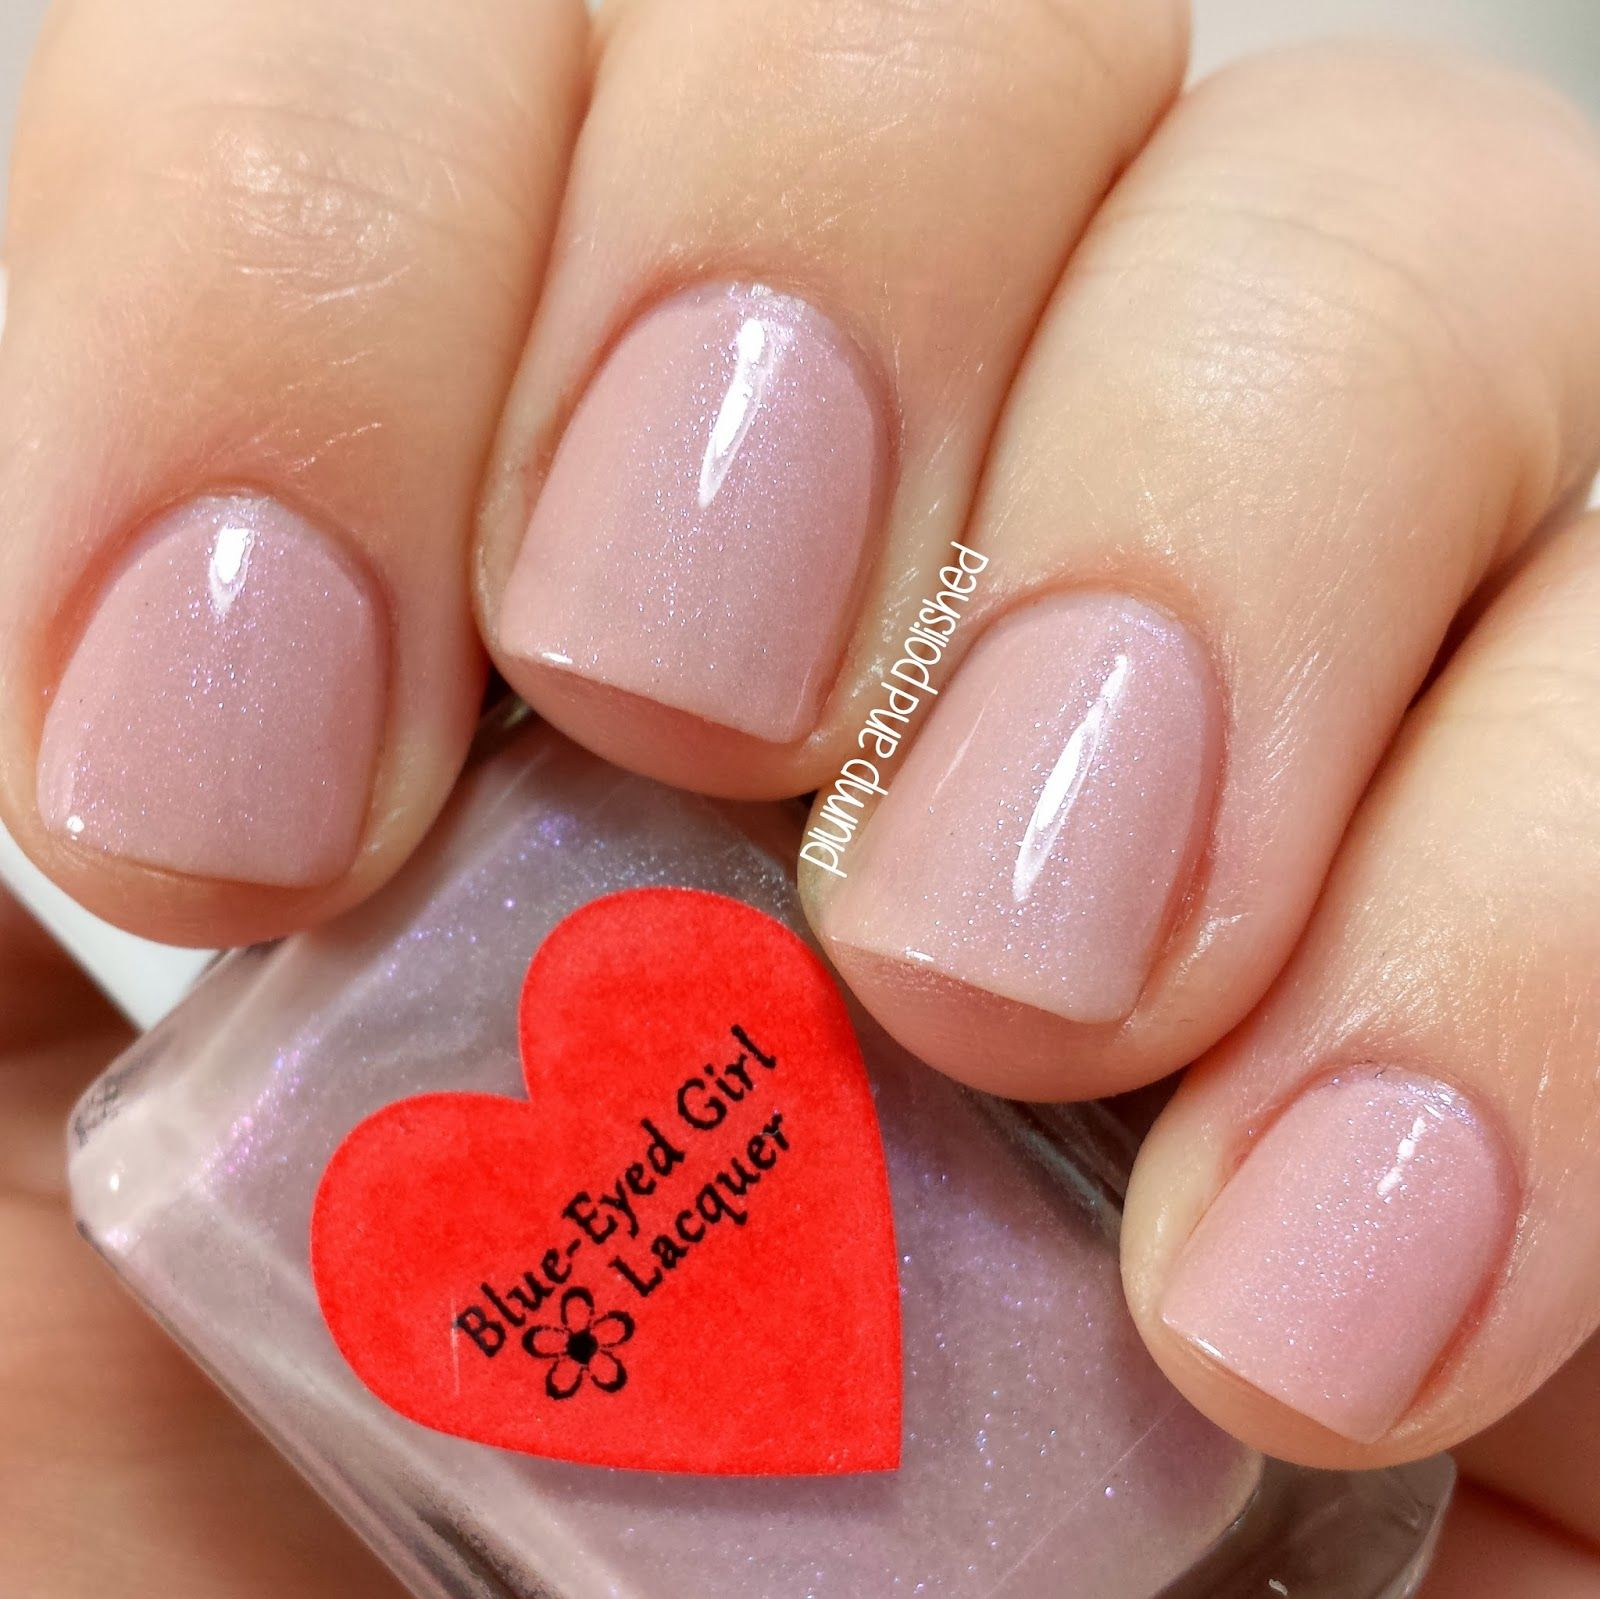 Plump and Polished: Blue-Eyed Girl Lacquer - My Indecisive Valentine